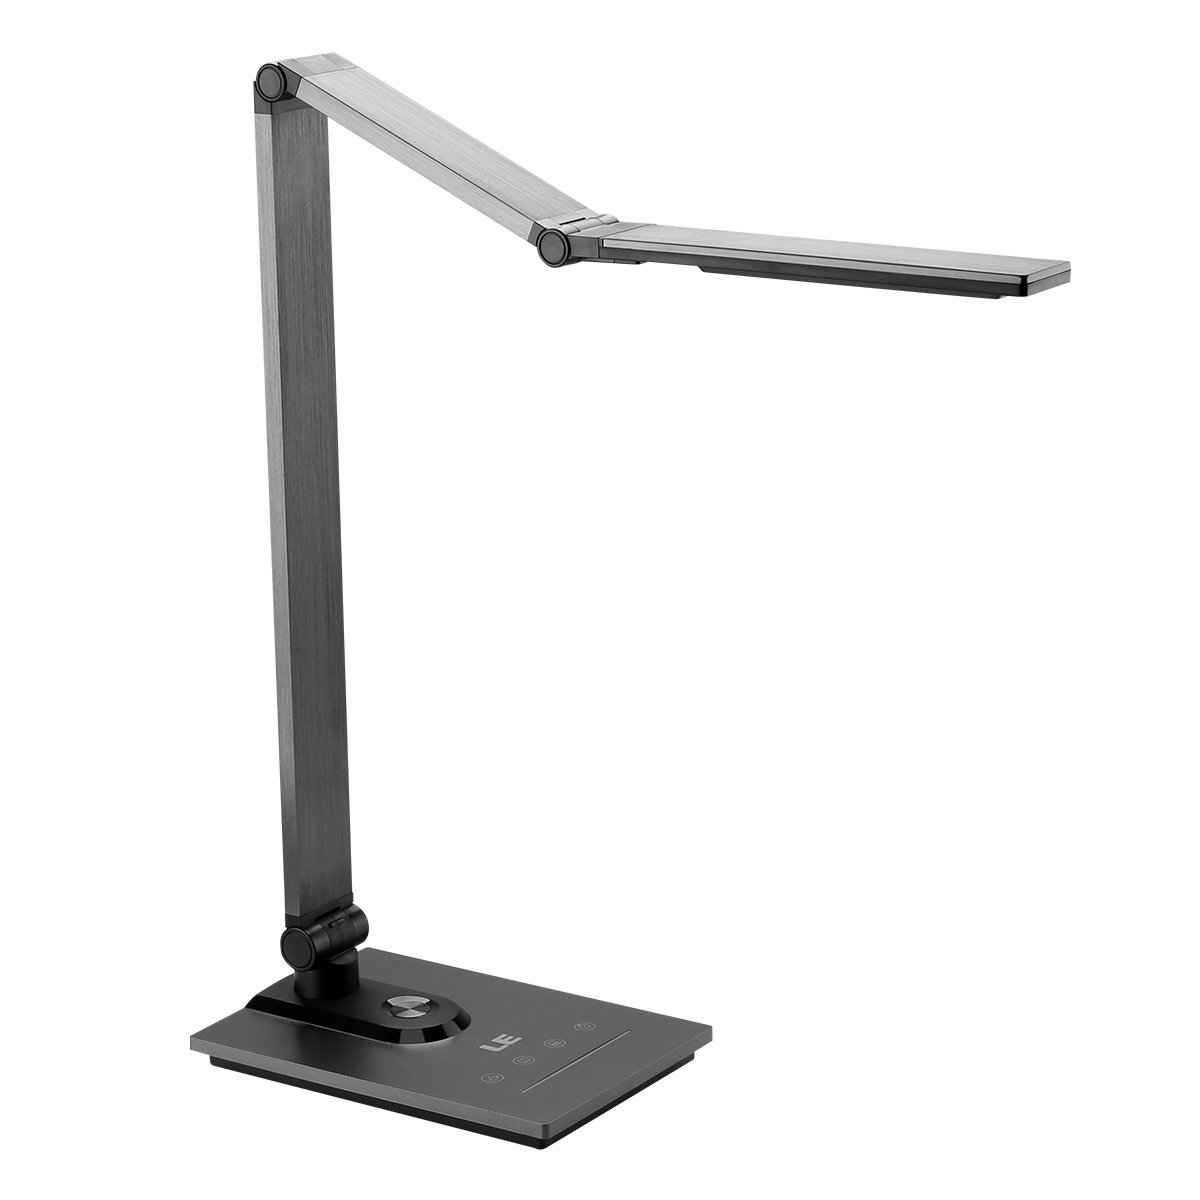 LE LED Dimmable Desk Lamp, Metal Table Light with Touch Control,Reading Working Lamp with 5V/2A USB Charging Port, 3-level Eye-Caring Modes Adjustable, Memory Function, Perfect for Home Office Hotel